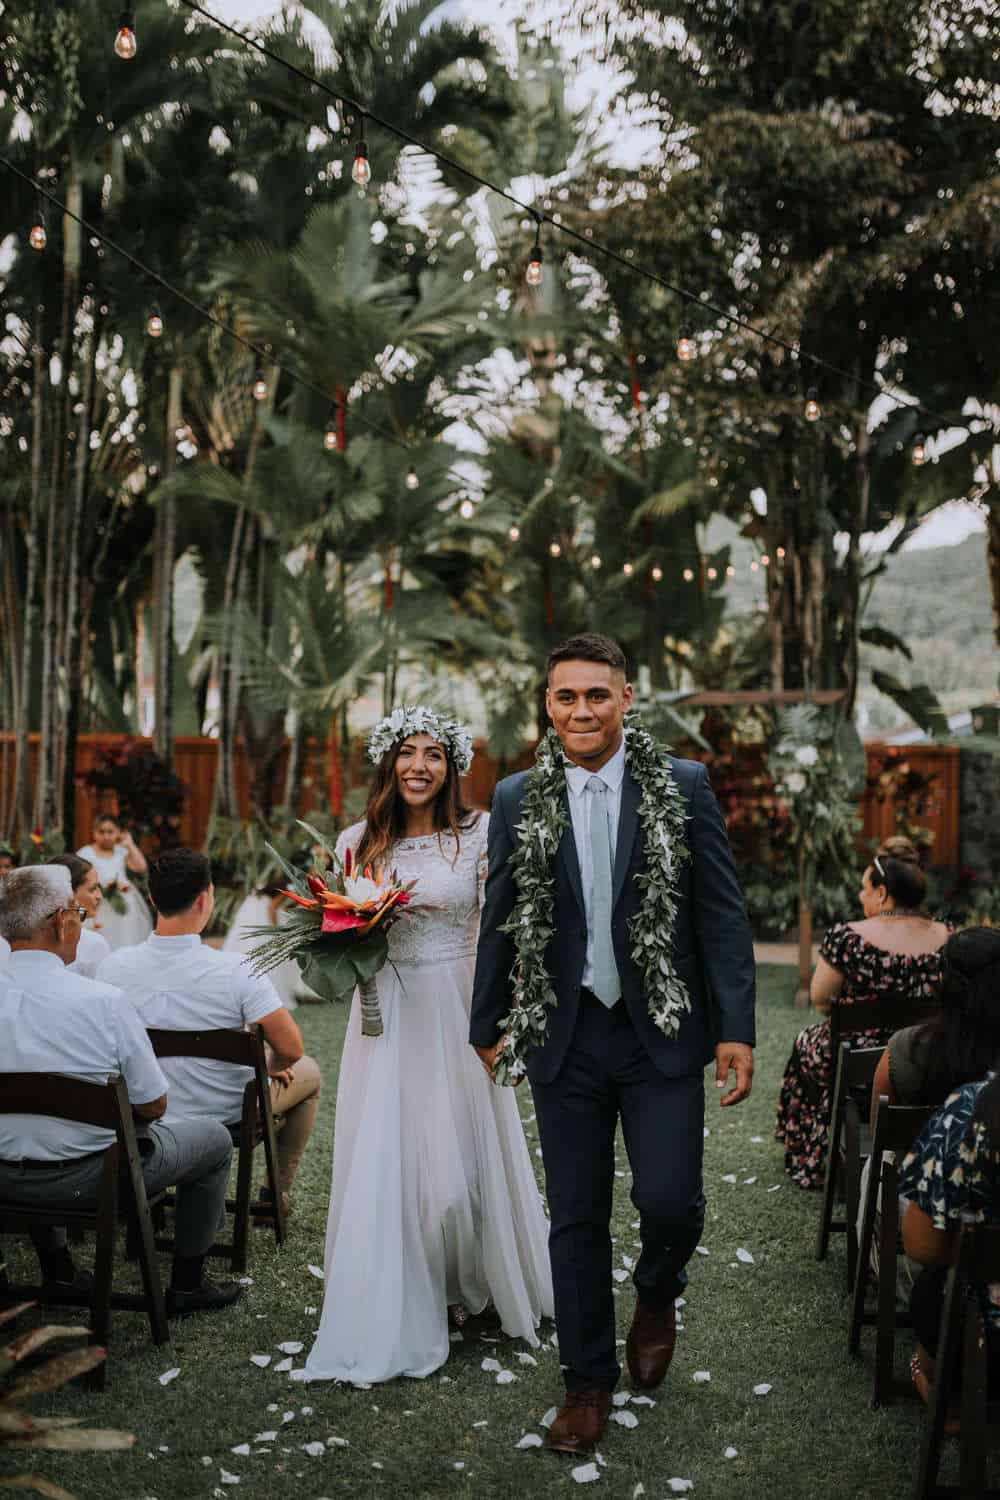 Bride and groom walking down the aisle at the end of their wedding ceremony at Hale Koa Estate in Oahu, Hawaii